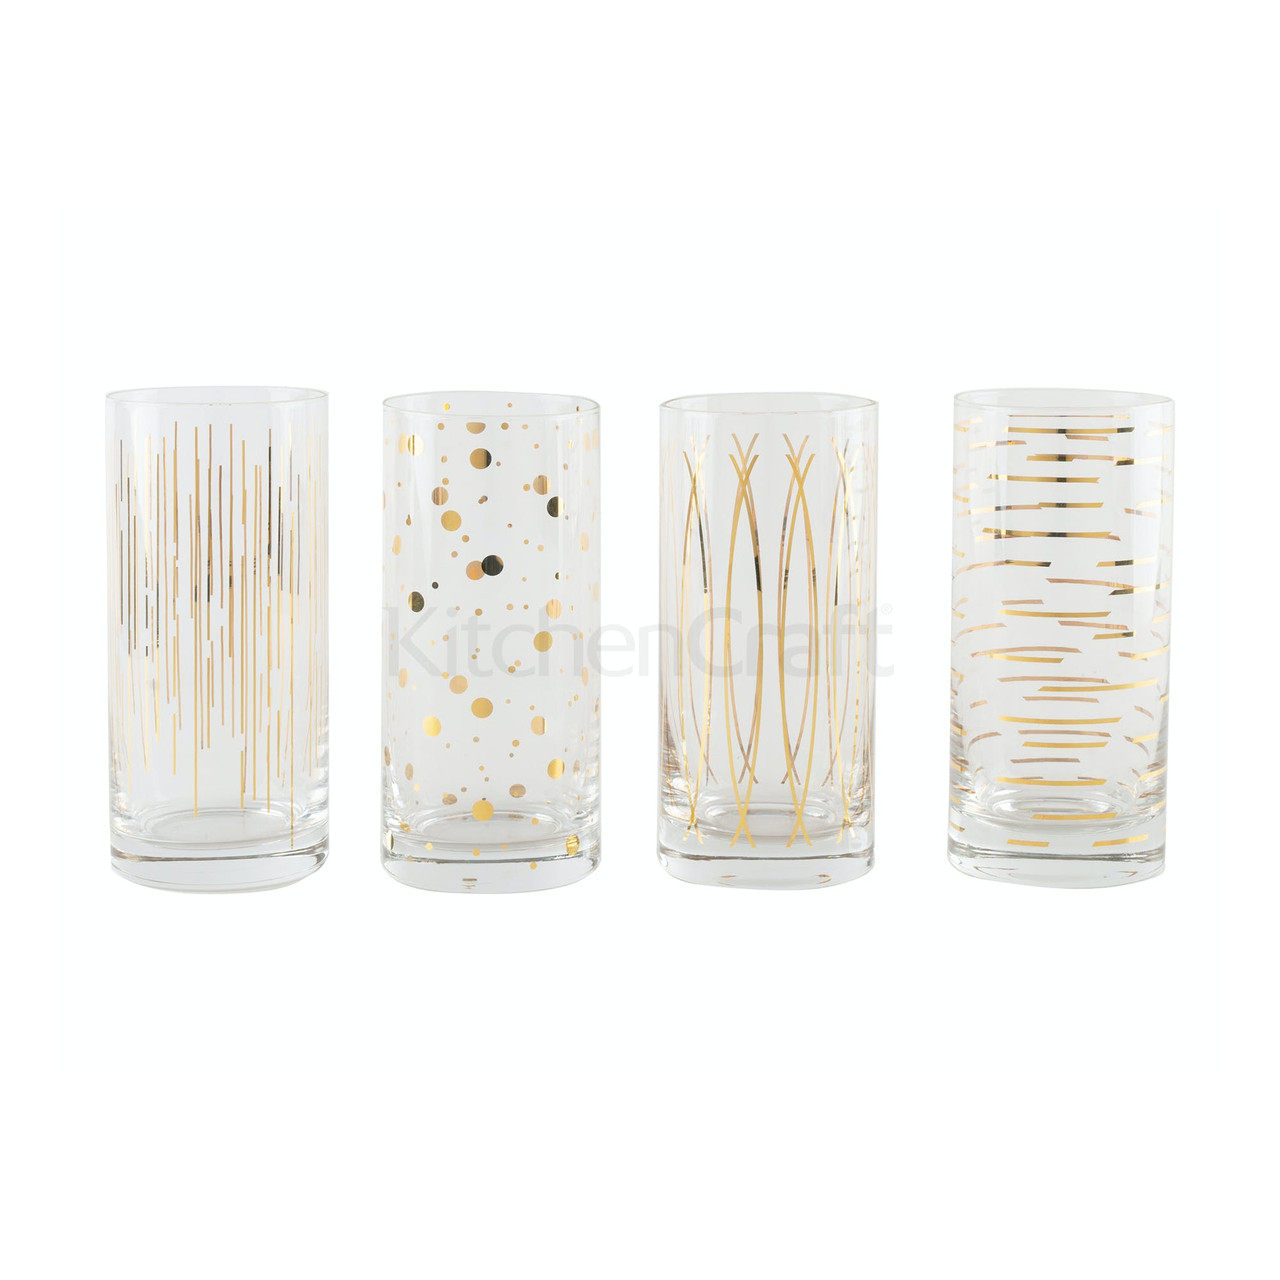 Mikasa Cheers Metallic Gold Set Of 4 16Oz High Ball Glasses (LOCAL DELIVERY ONLY)